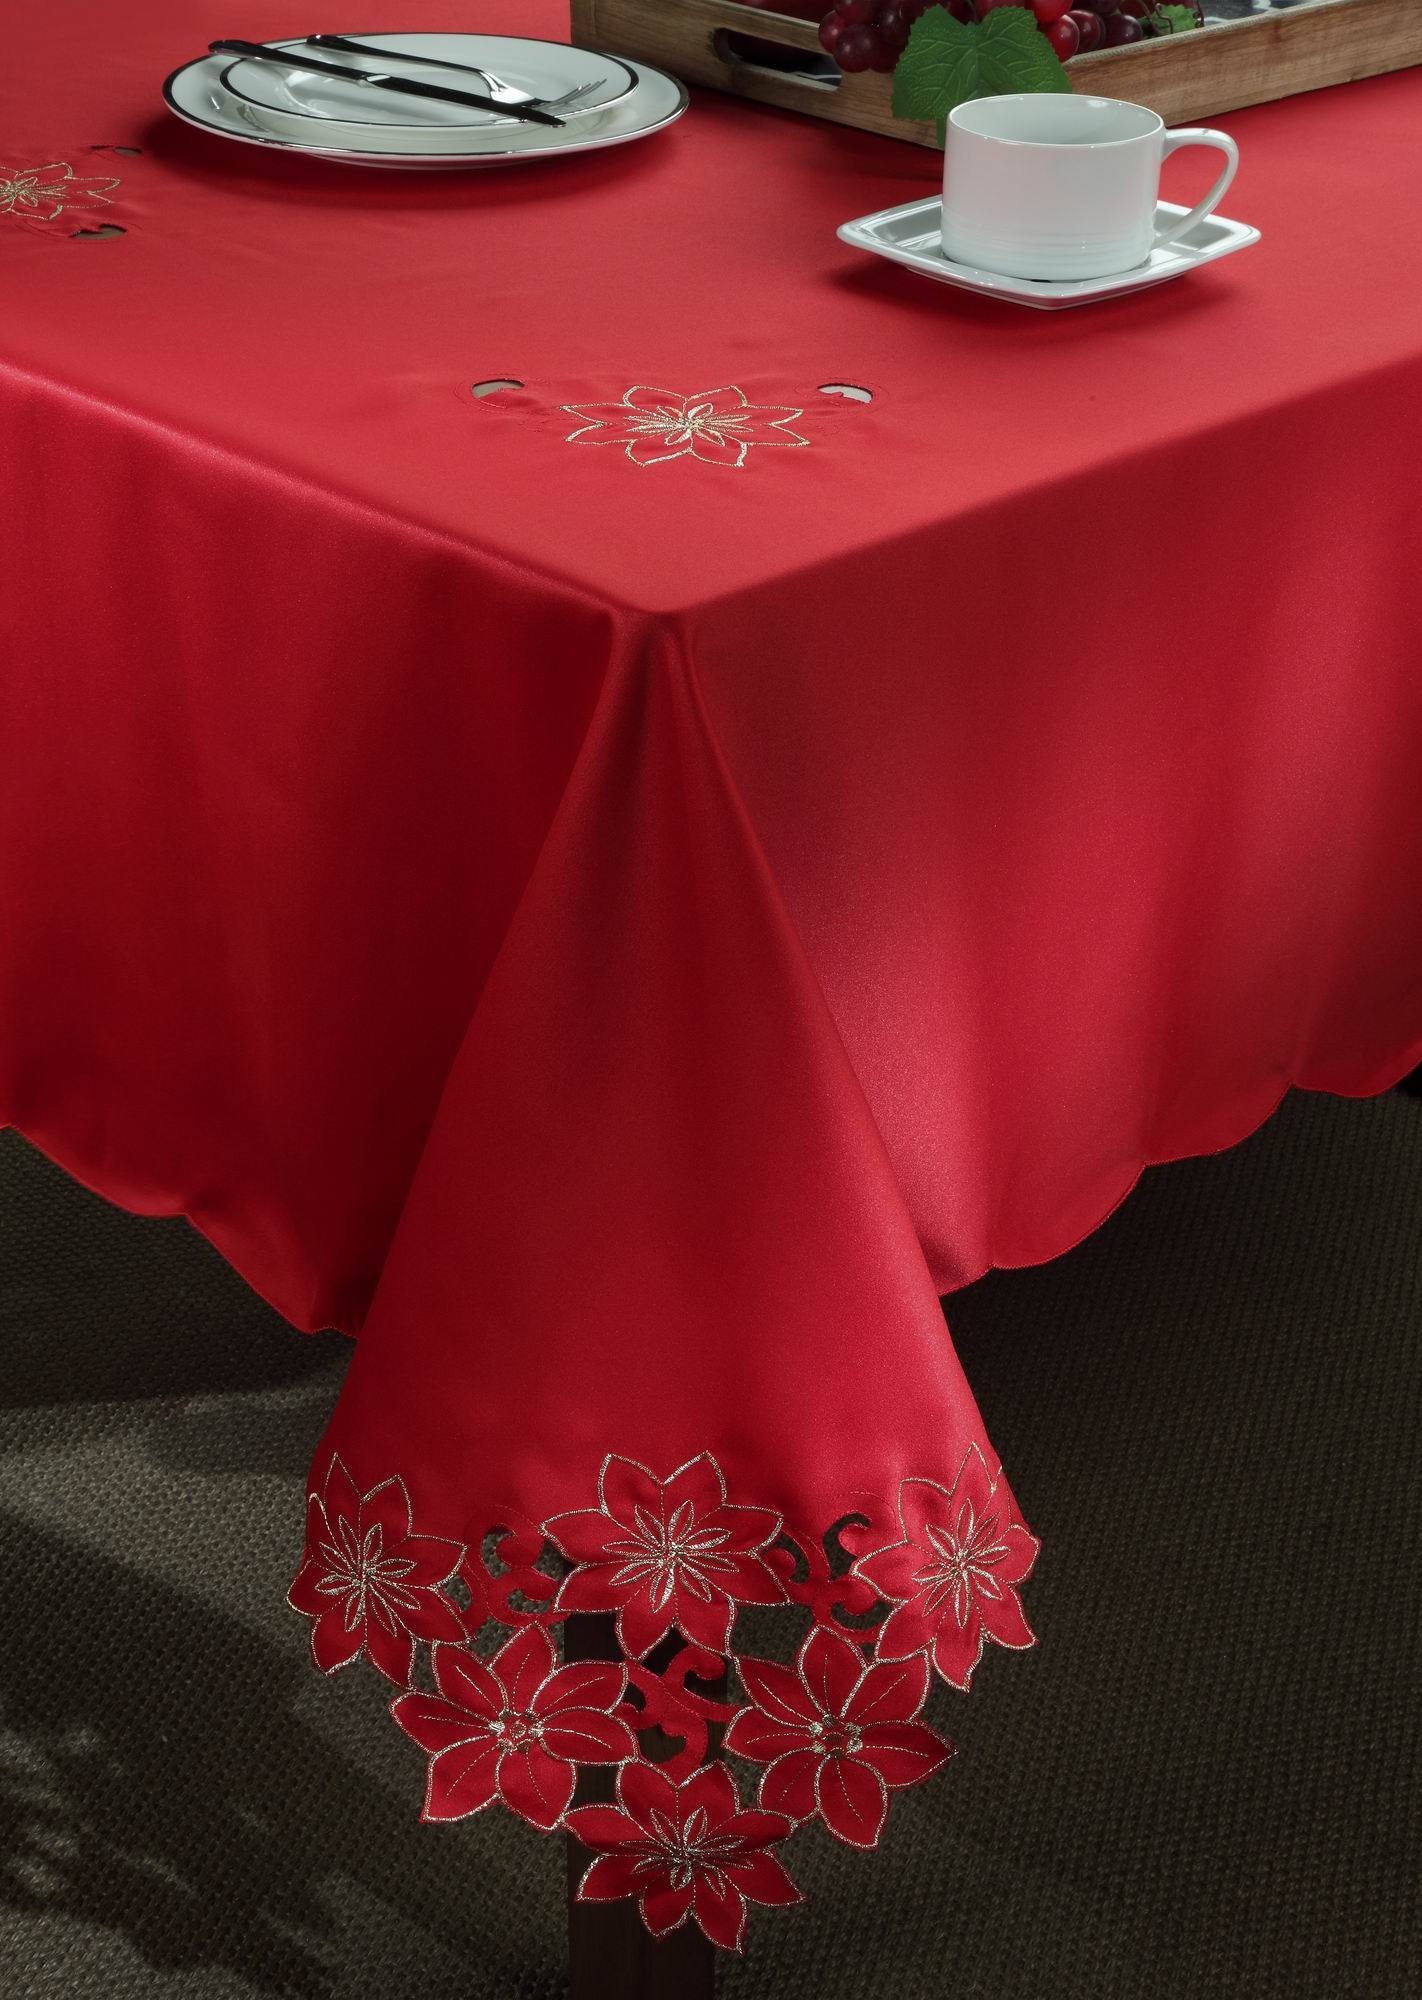 Red Poinsettia Tablecloth With Metallic Thread Embroidery